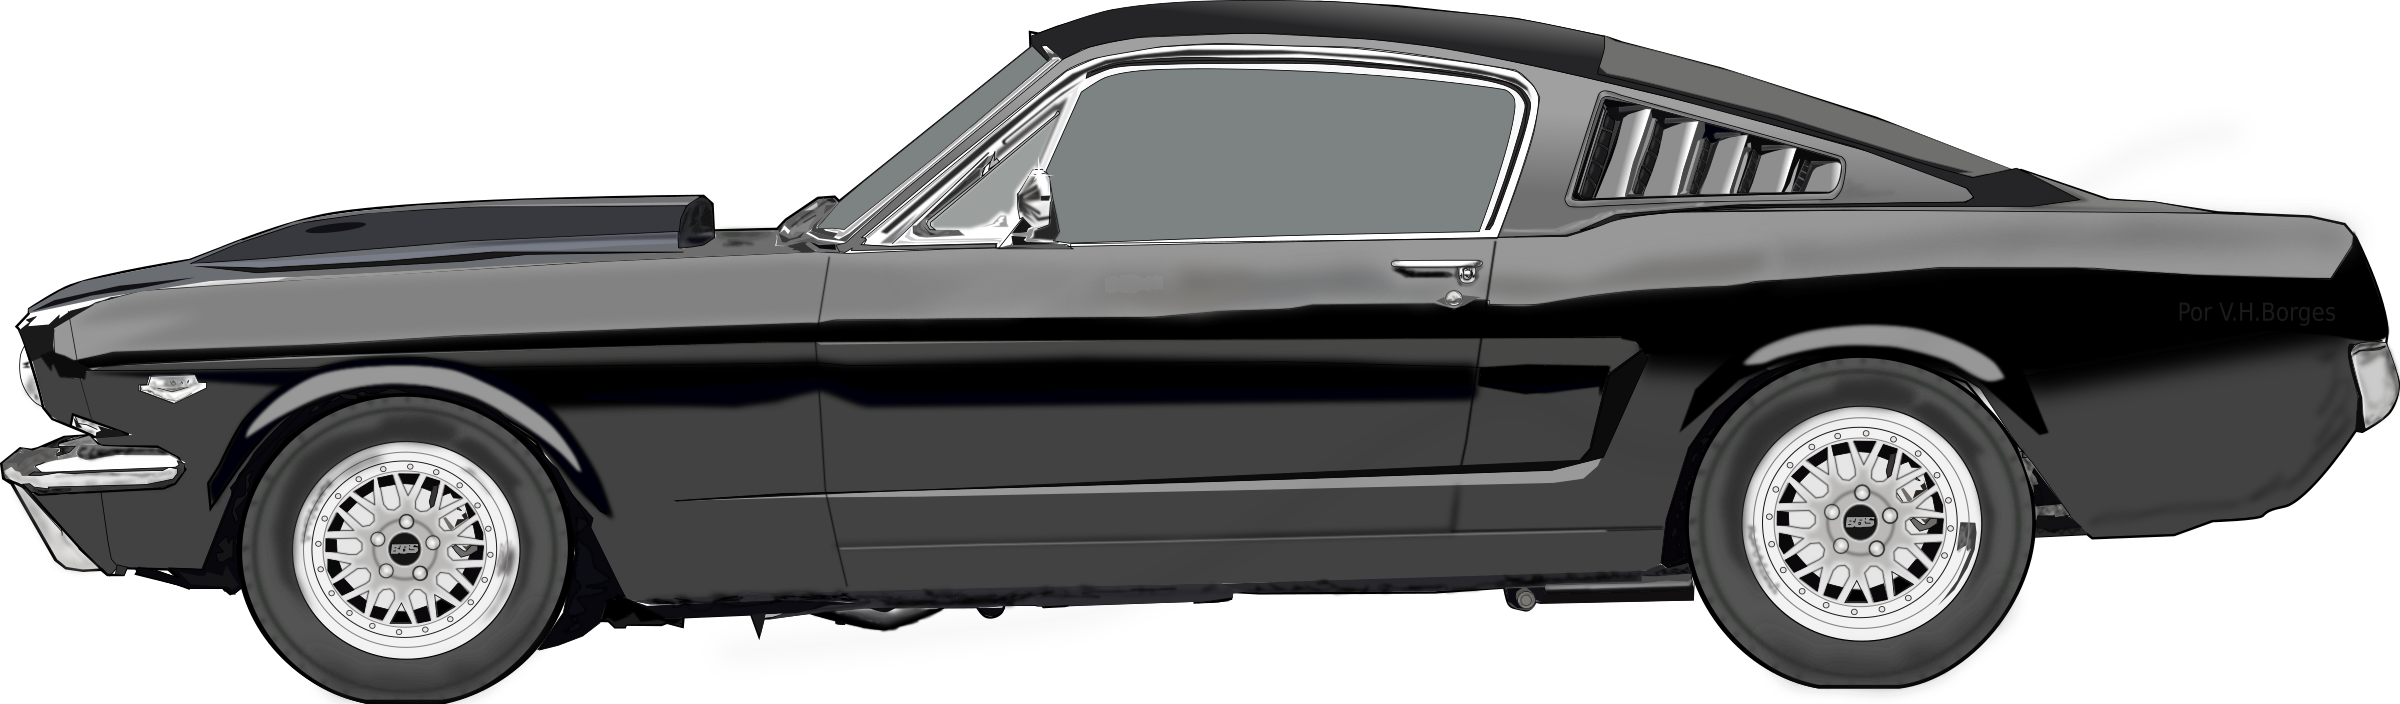 Ford Mustang by victorborges